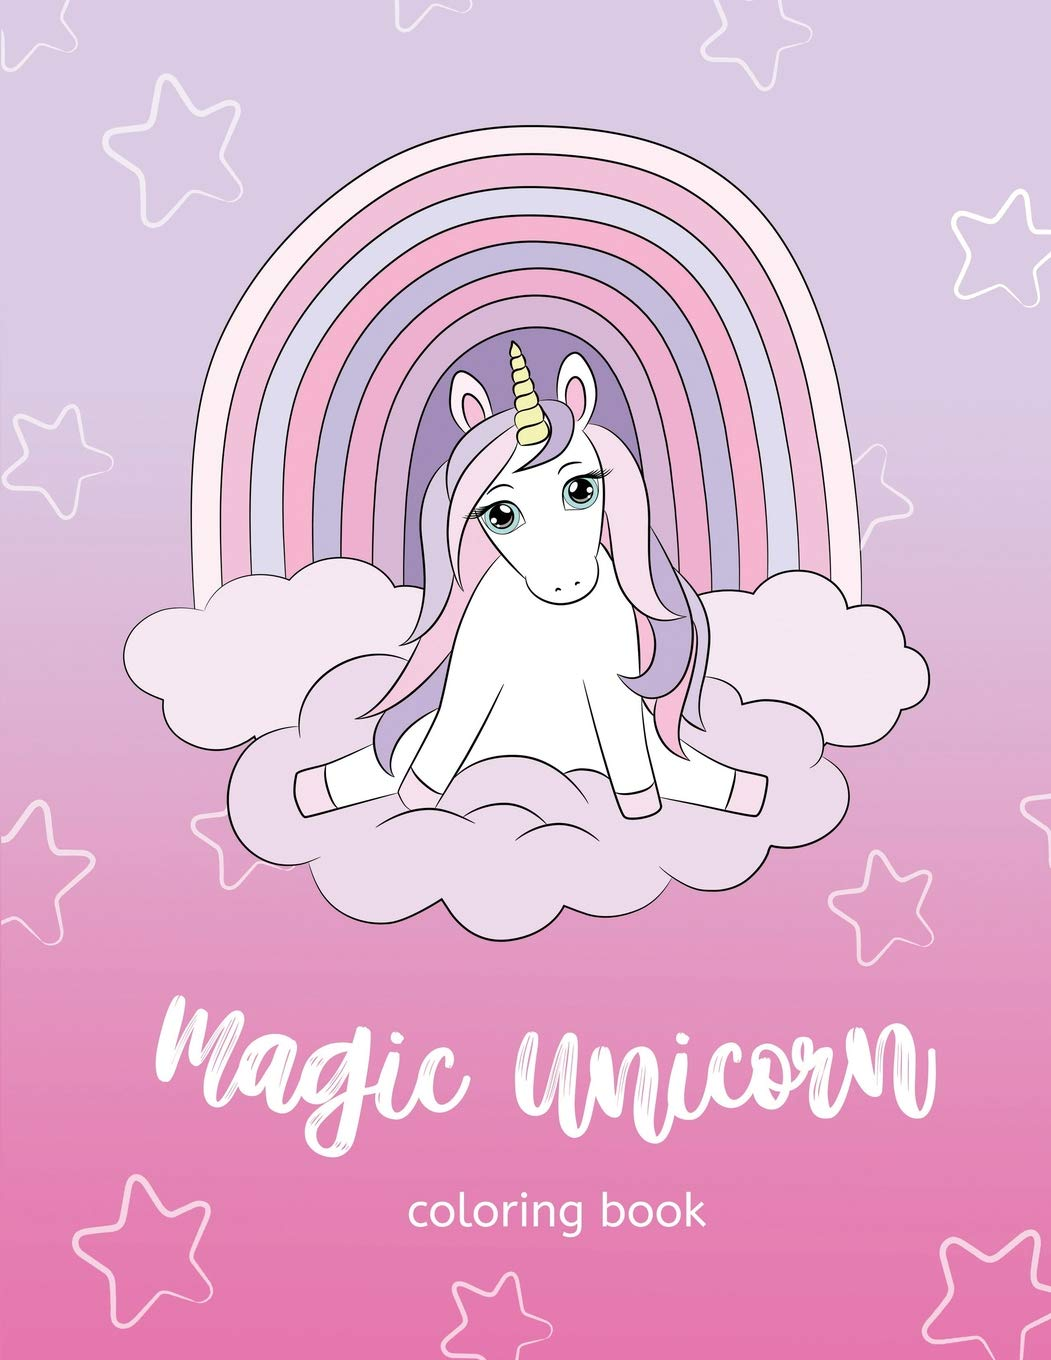 Magic Unicorn Coloring Book Simple Coloring Pages For Toddlers Coloring Book For Kids Ages 2 3 4 5 Sirius Octopus 9781790640713 Amazon Com Books